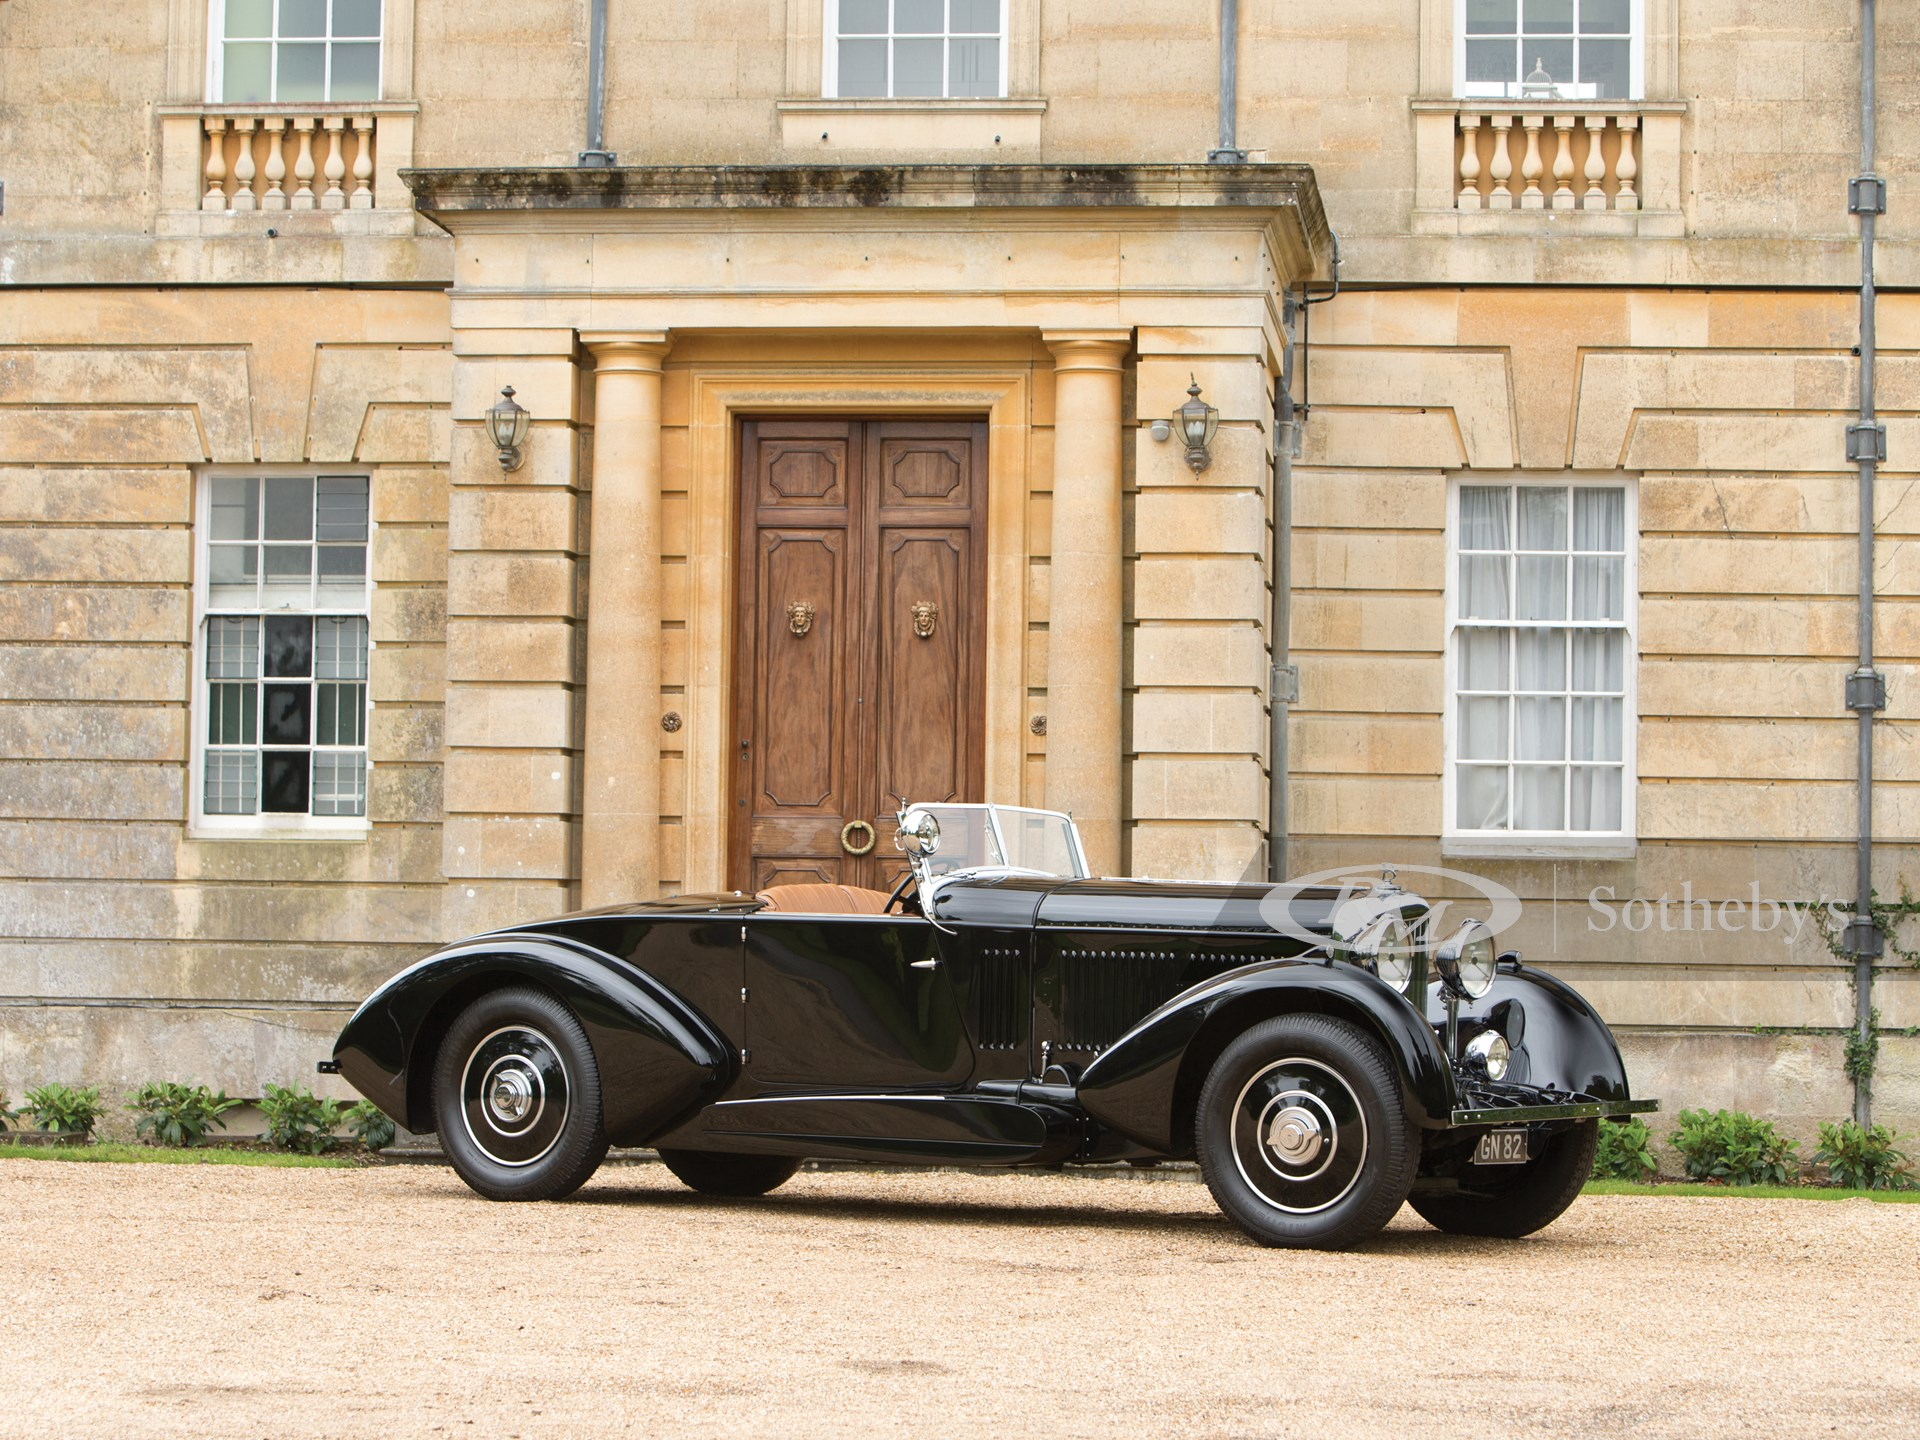 1931 Bentley 8-Litre Sports Coupe Cabriolet by Barker